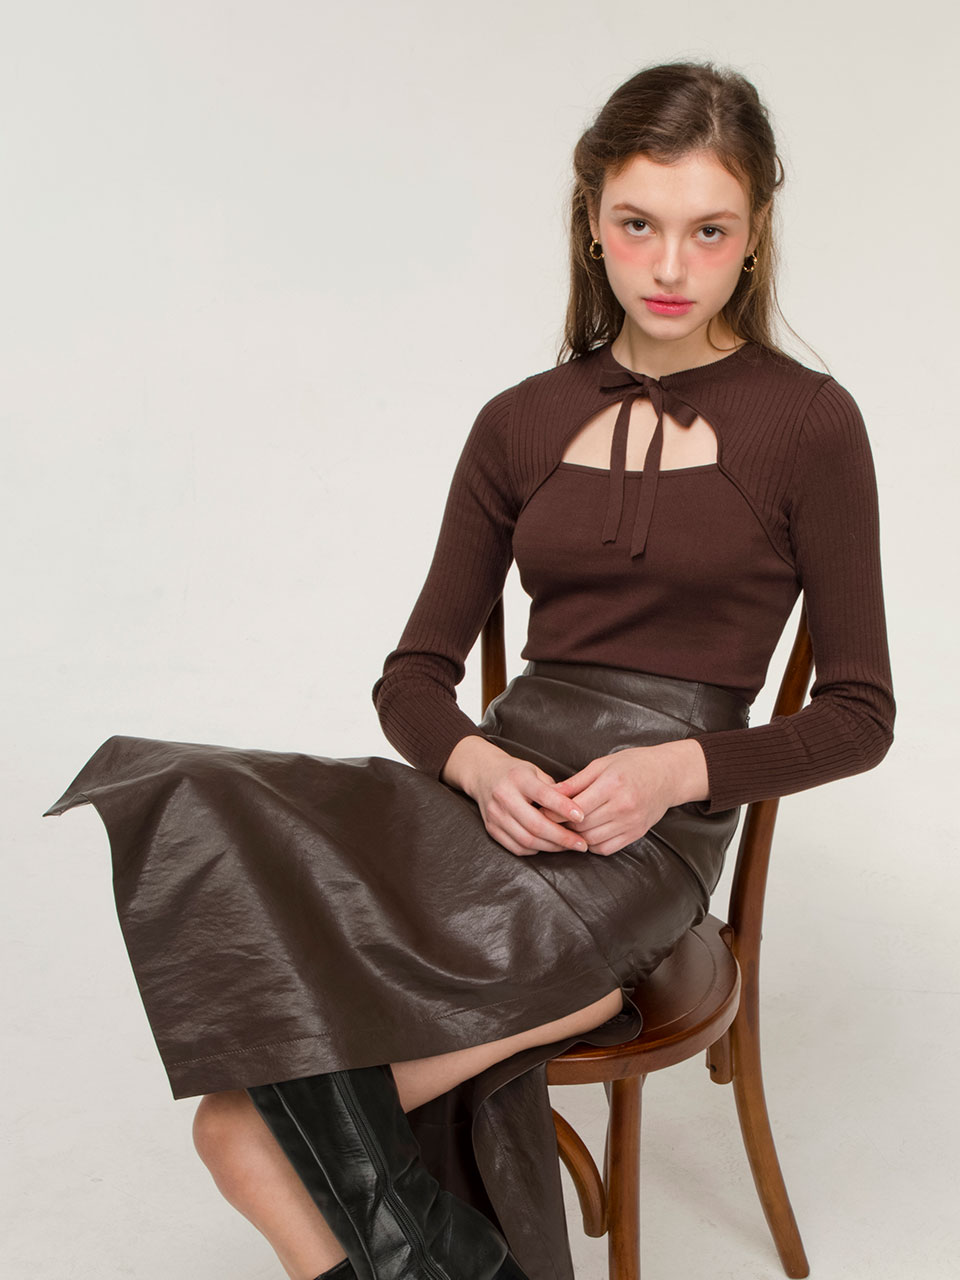 Ribbon tie knit (brown)